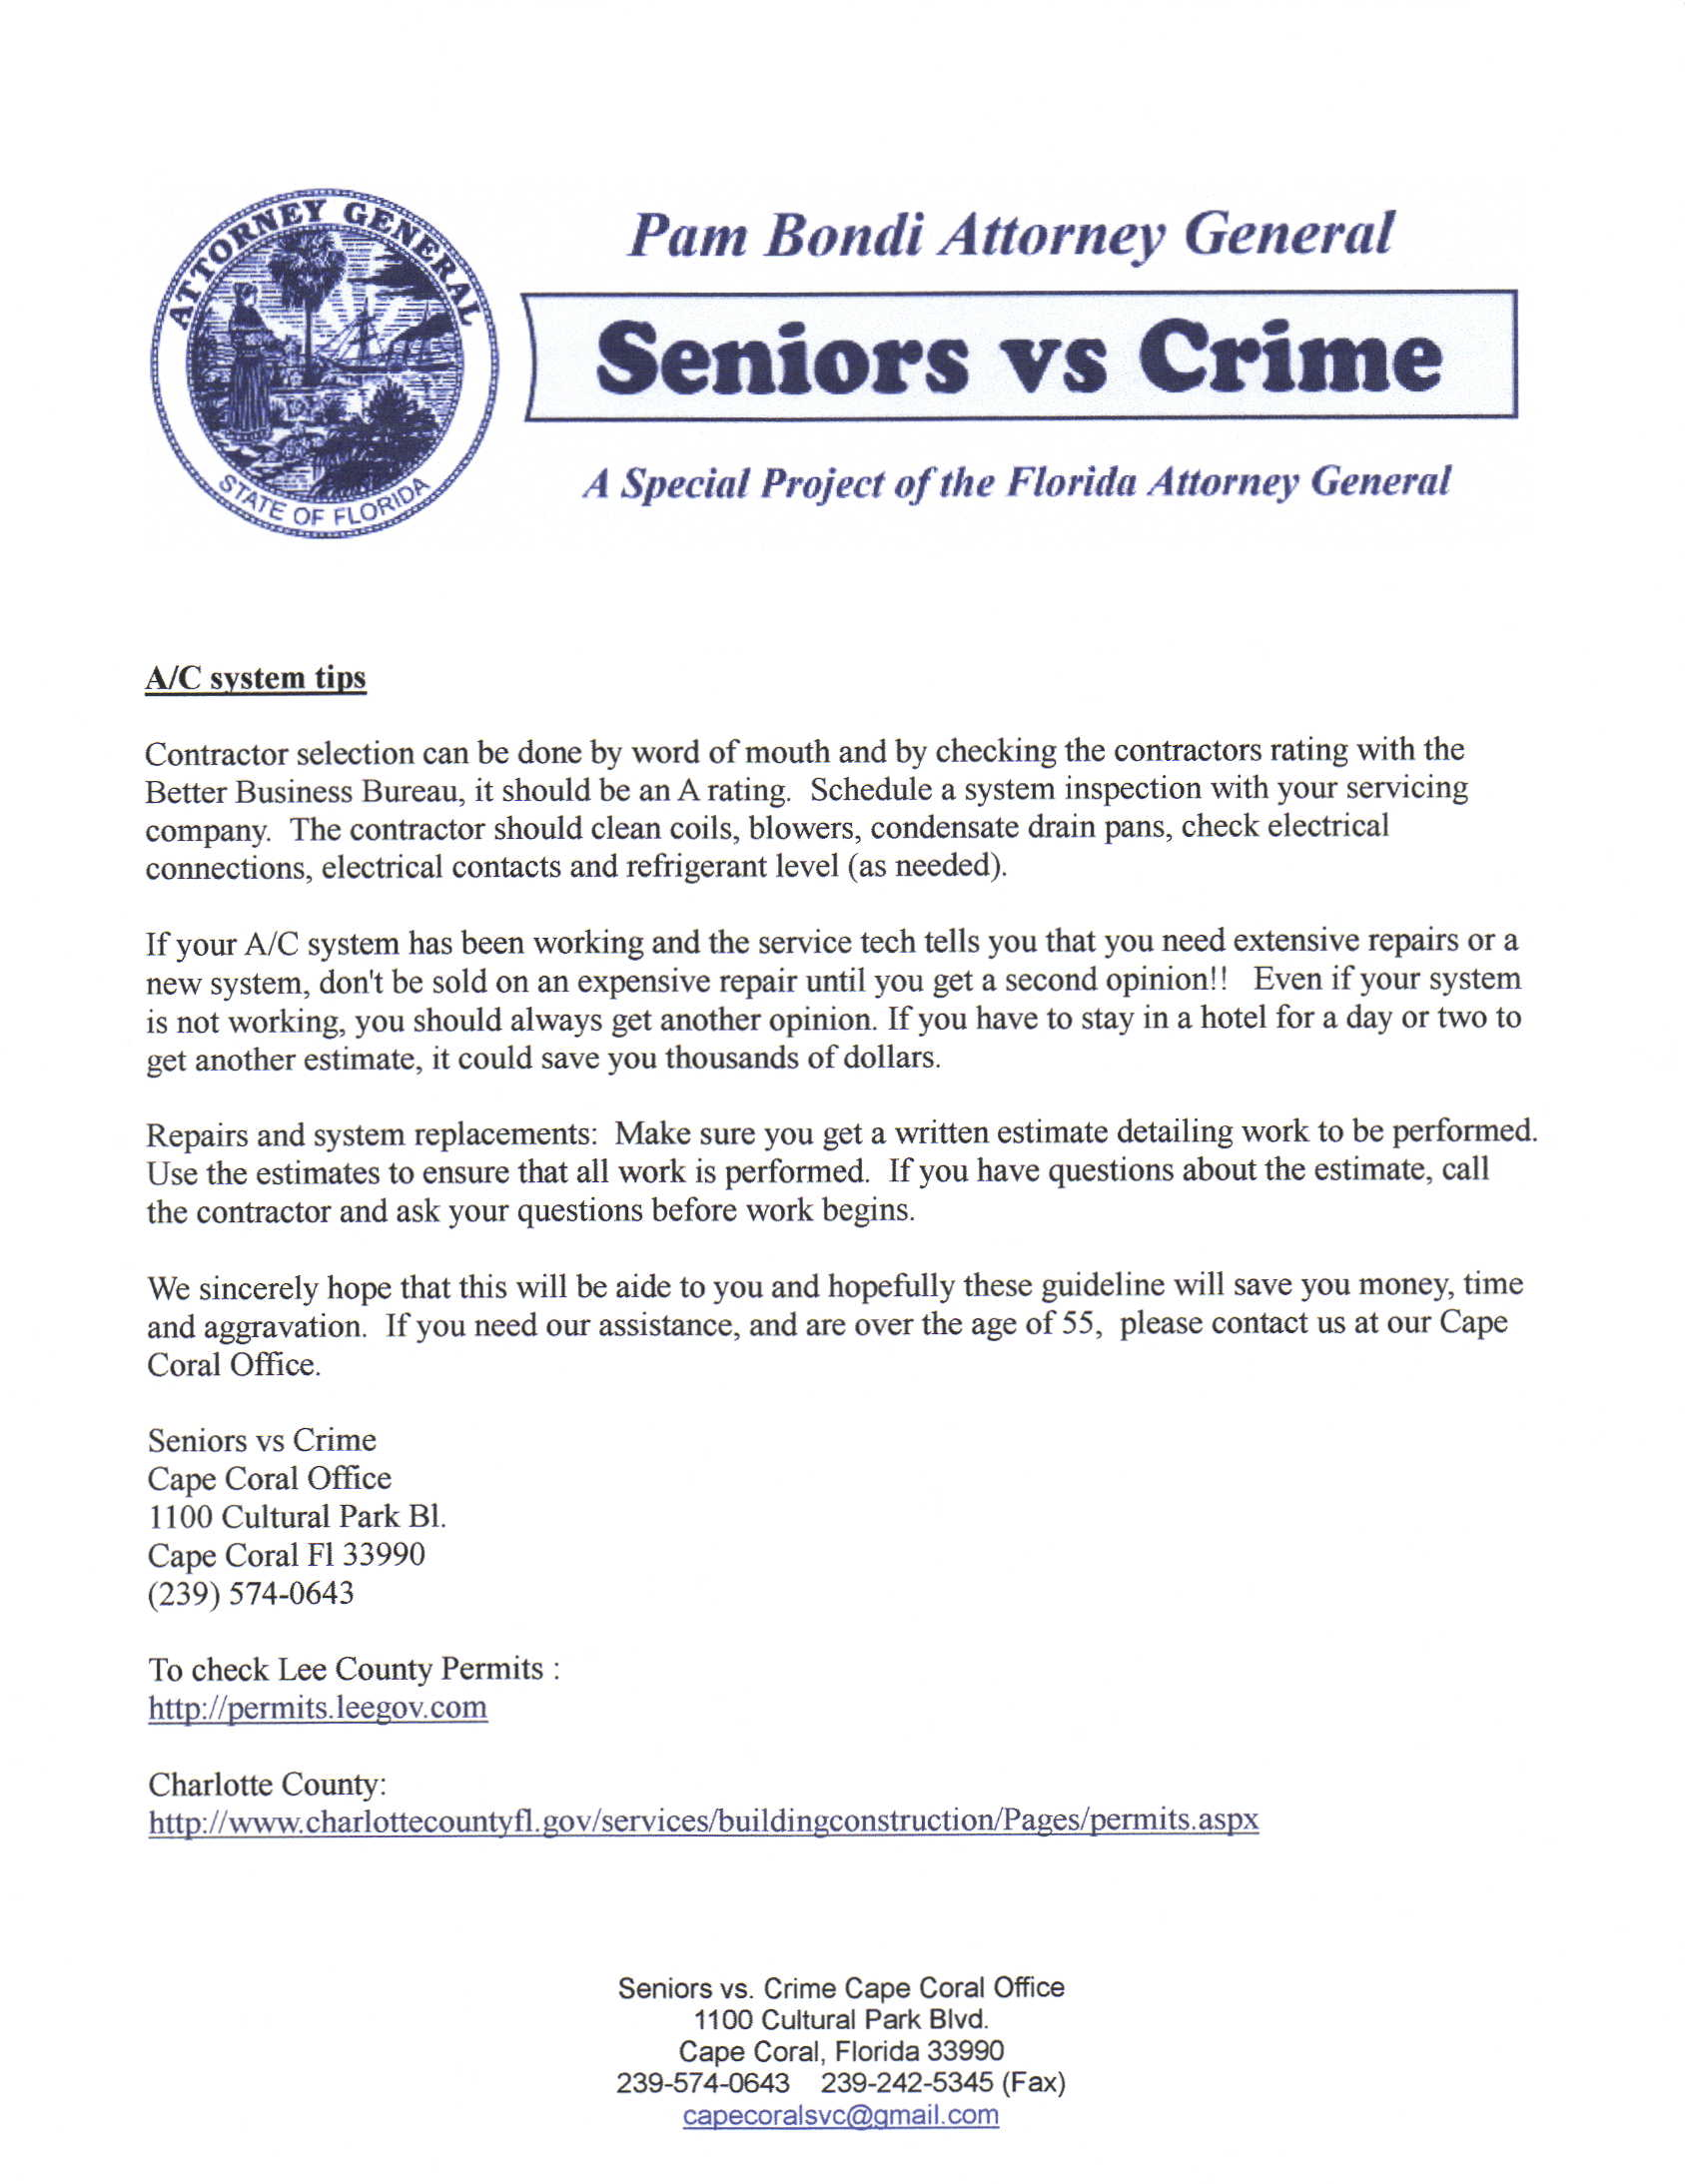 A Seniors vs  Crime Consumer Protection Notice From The